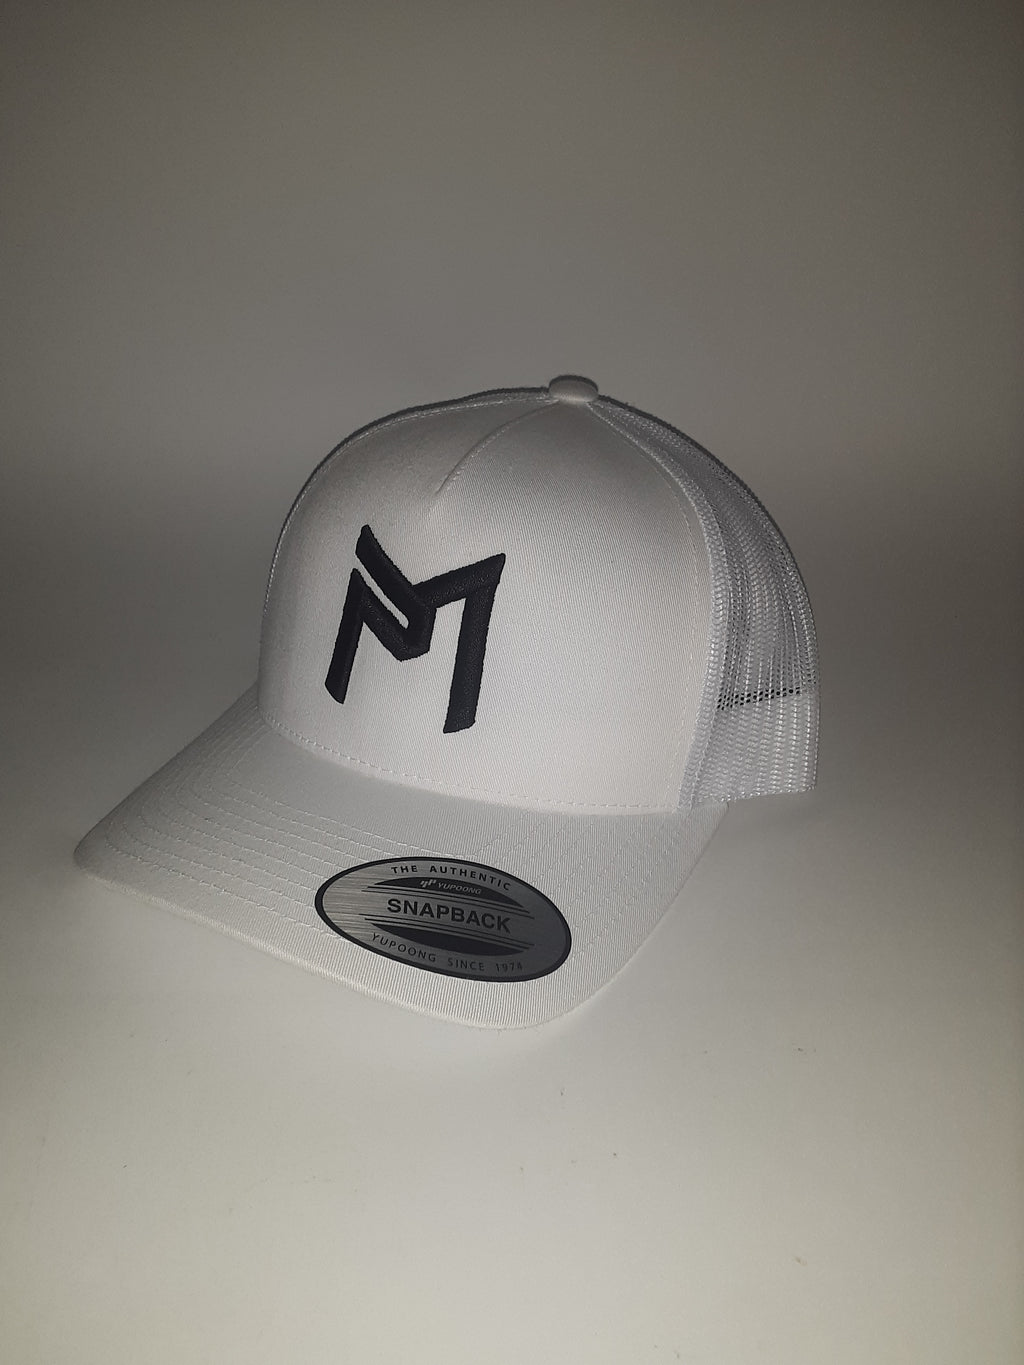 Paul McBeth Trucker Hat ( Snap Back )